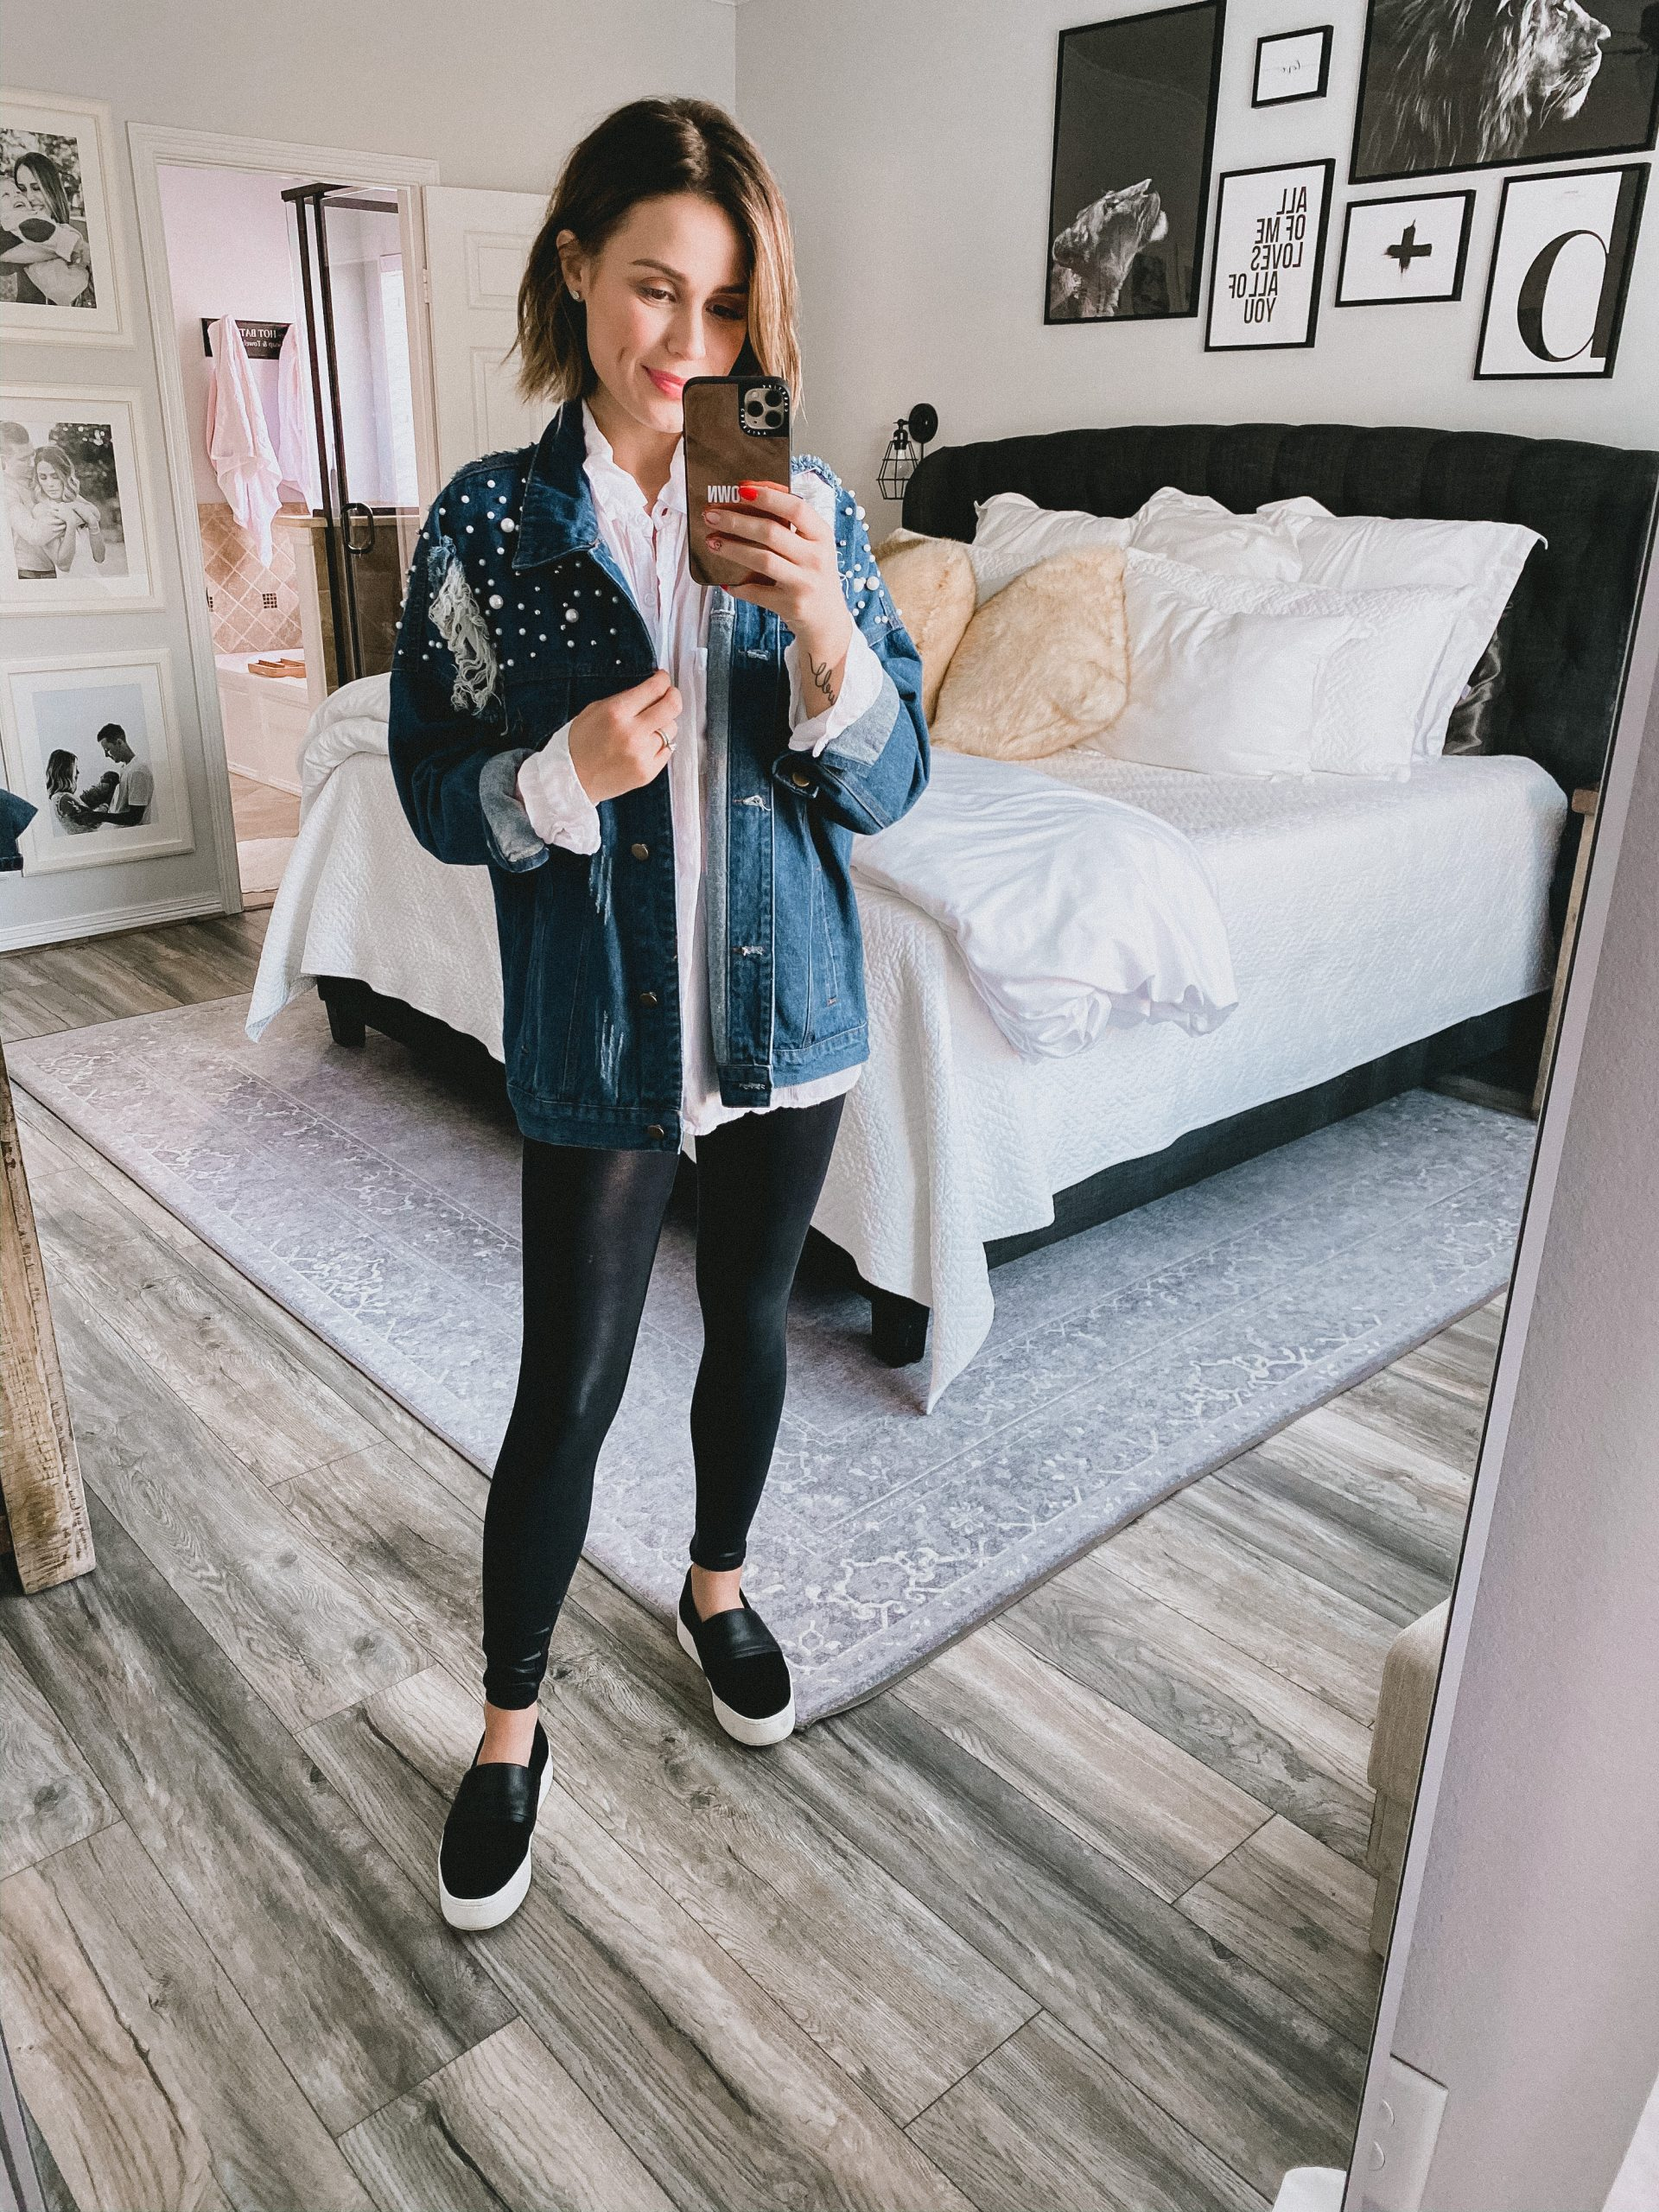 Houston fashion blogger Elly Brown wears leggings with an oversized boyfriend button up top